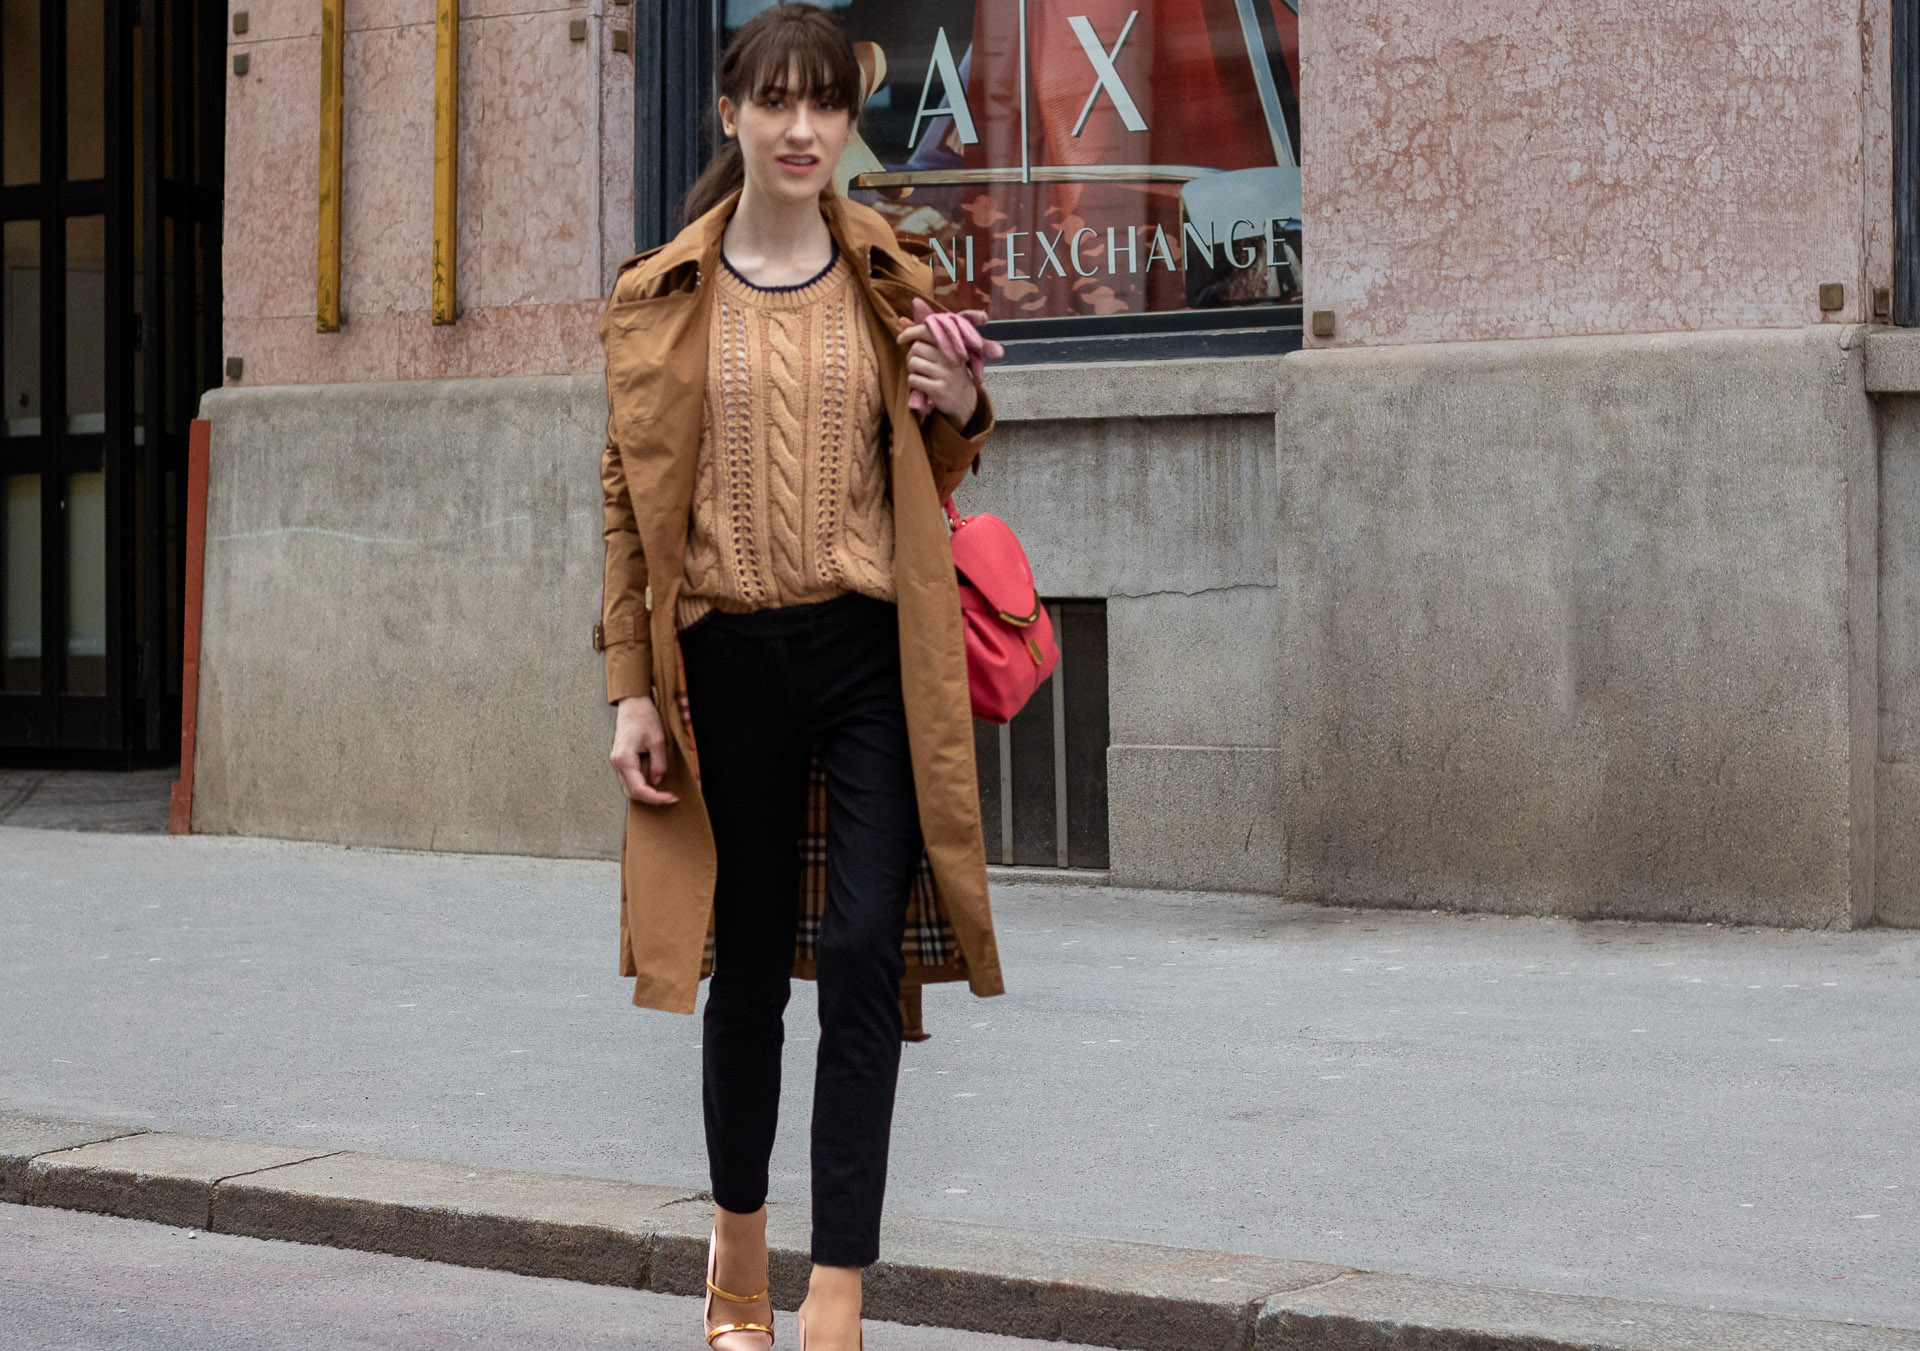 Must follow Slovenian Fashion Blogger Veronika Lipar of Brunette from Wall Street wearing camel Burberry Kensington trench coat Mango cable knit sweater black slacks blush Malone Souliers mules pink top handle bag low ponytail bangs going to work